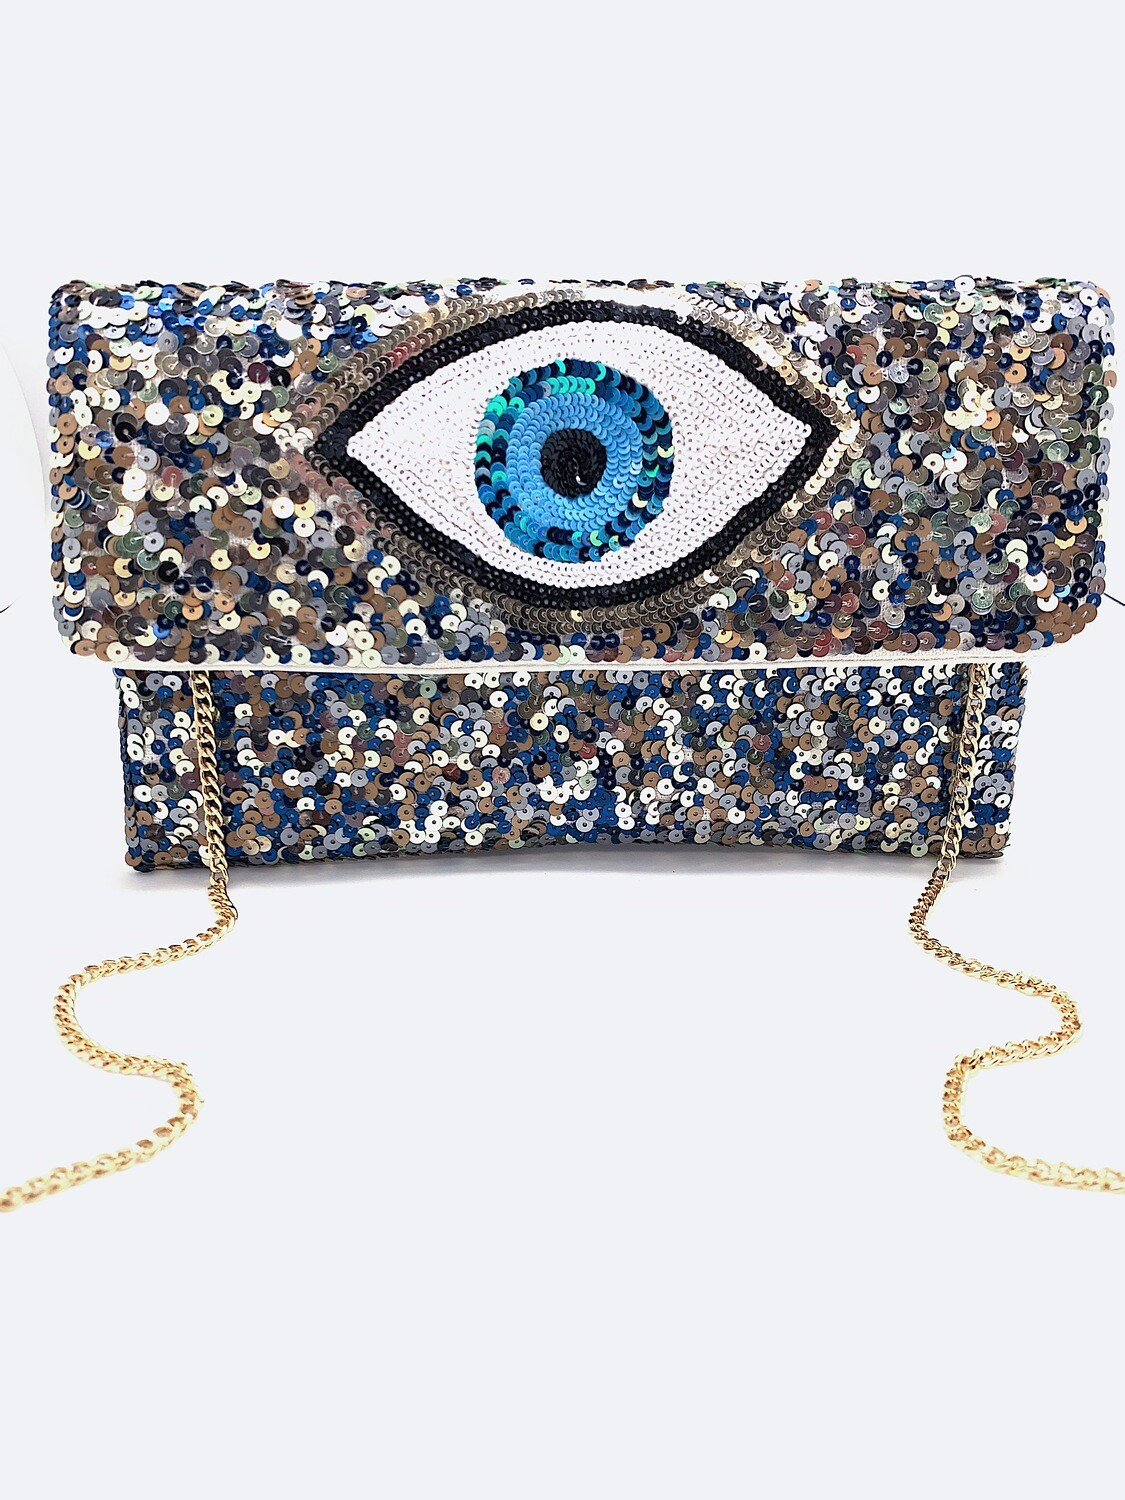 La Chic Evil Eye Sequin Bag